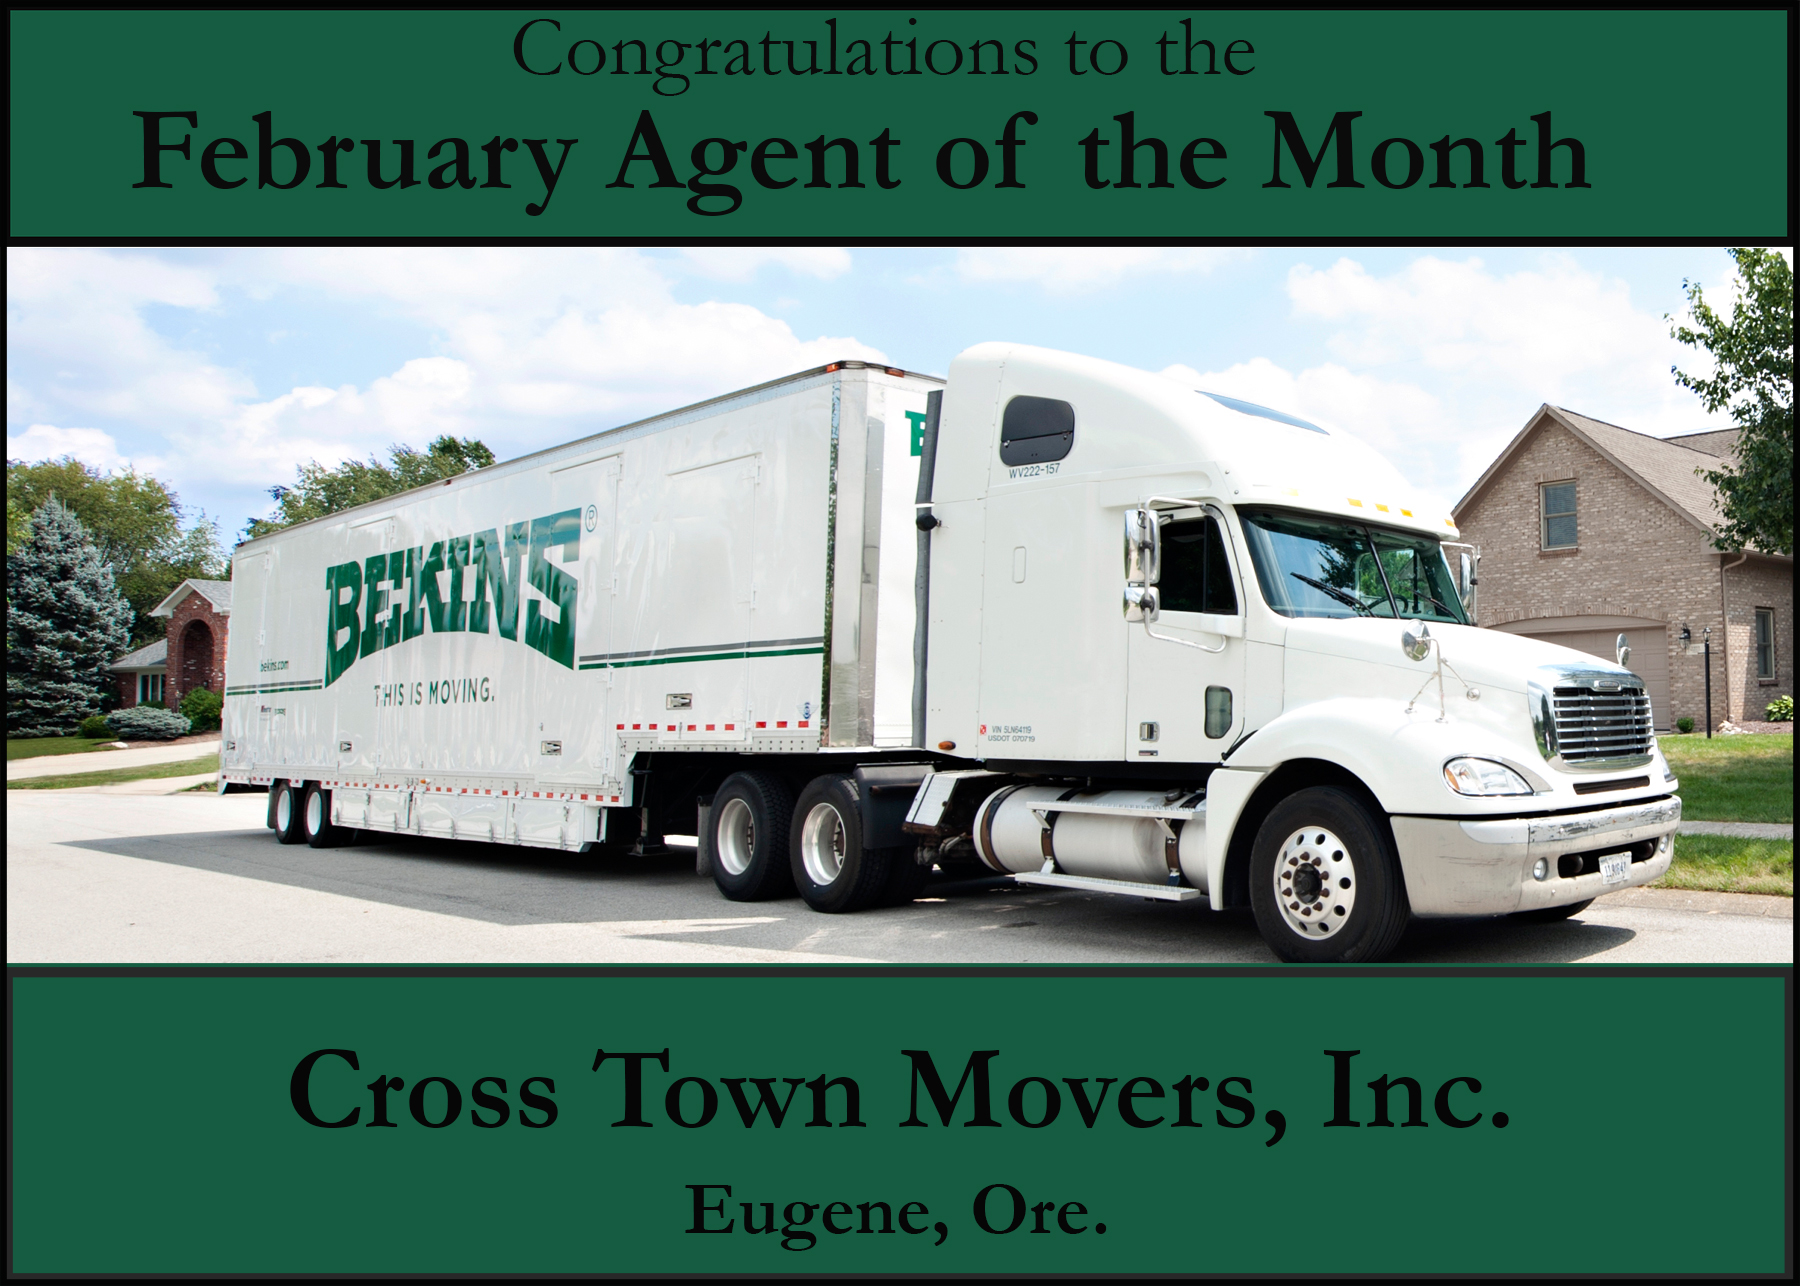 Cross Town Movers Agent of the Month